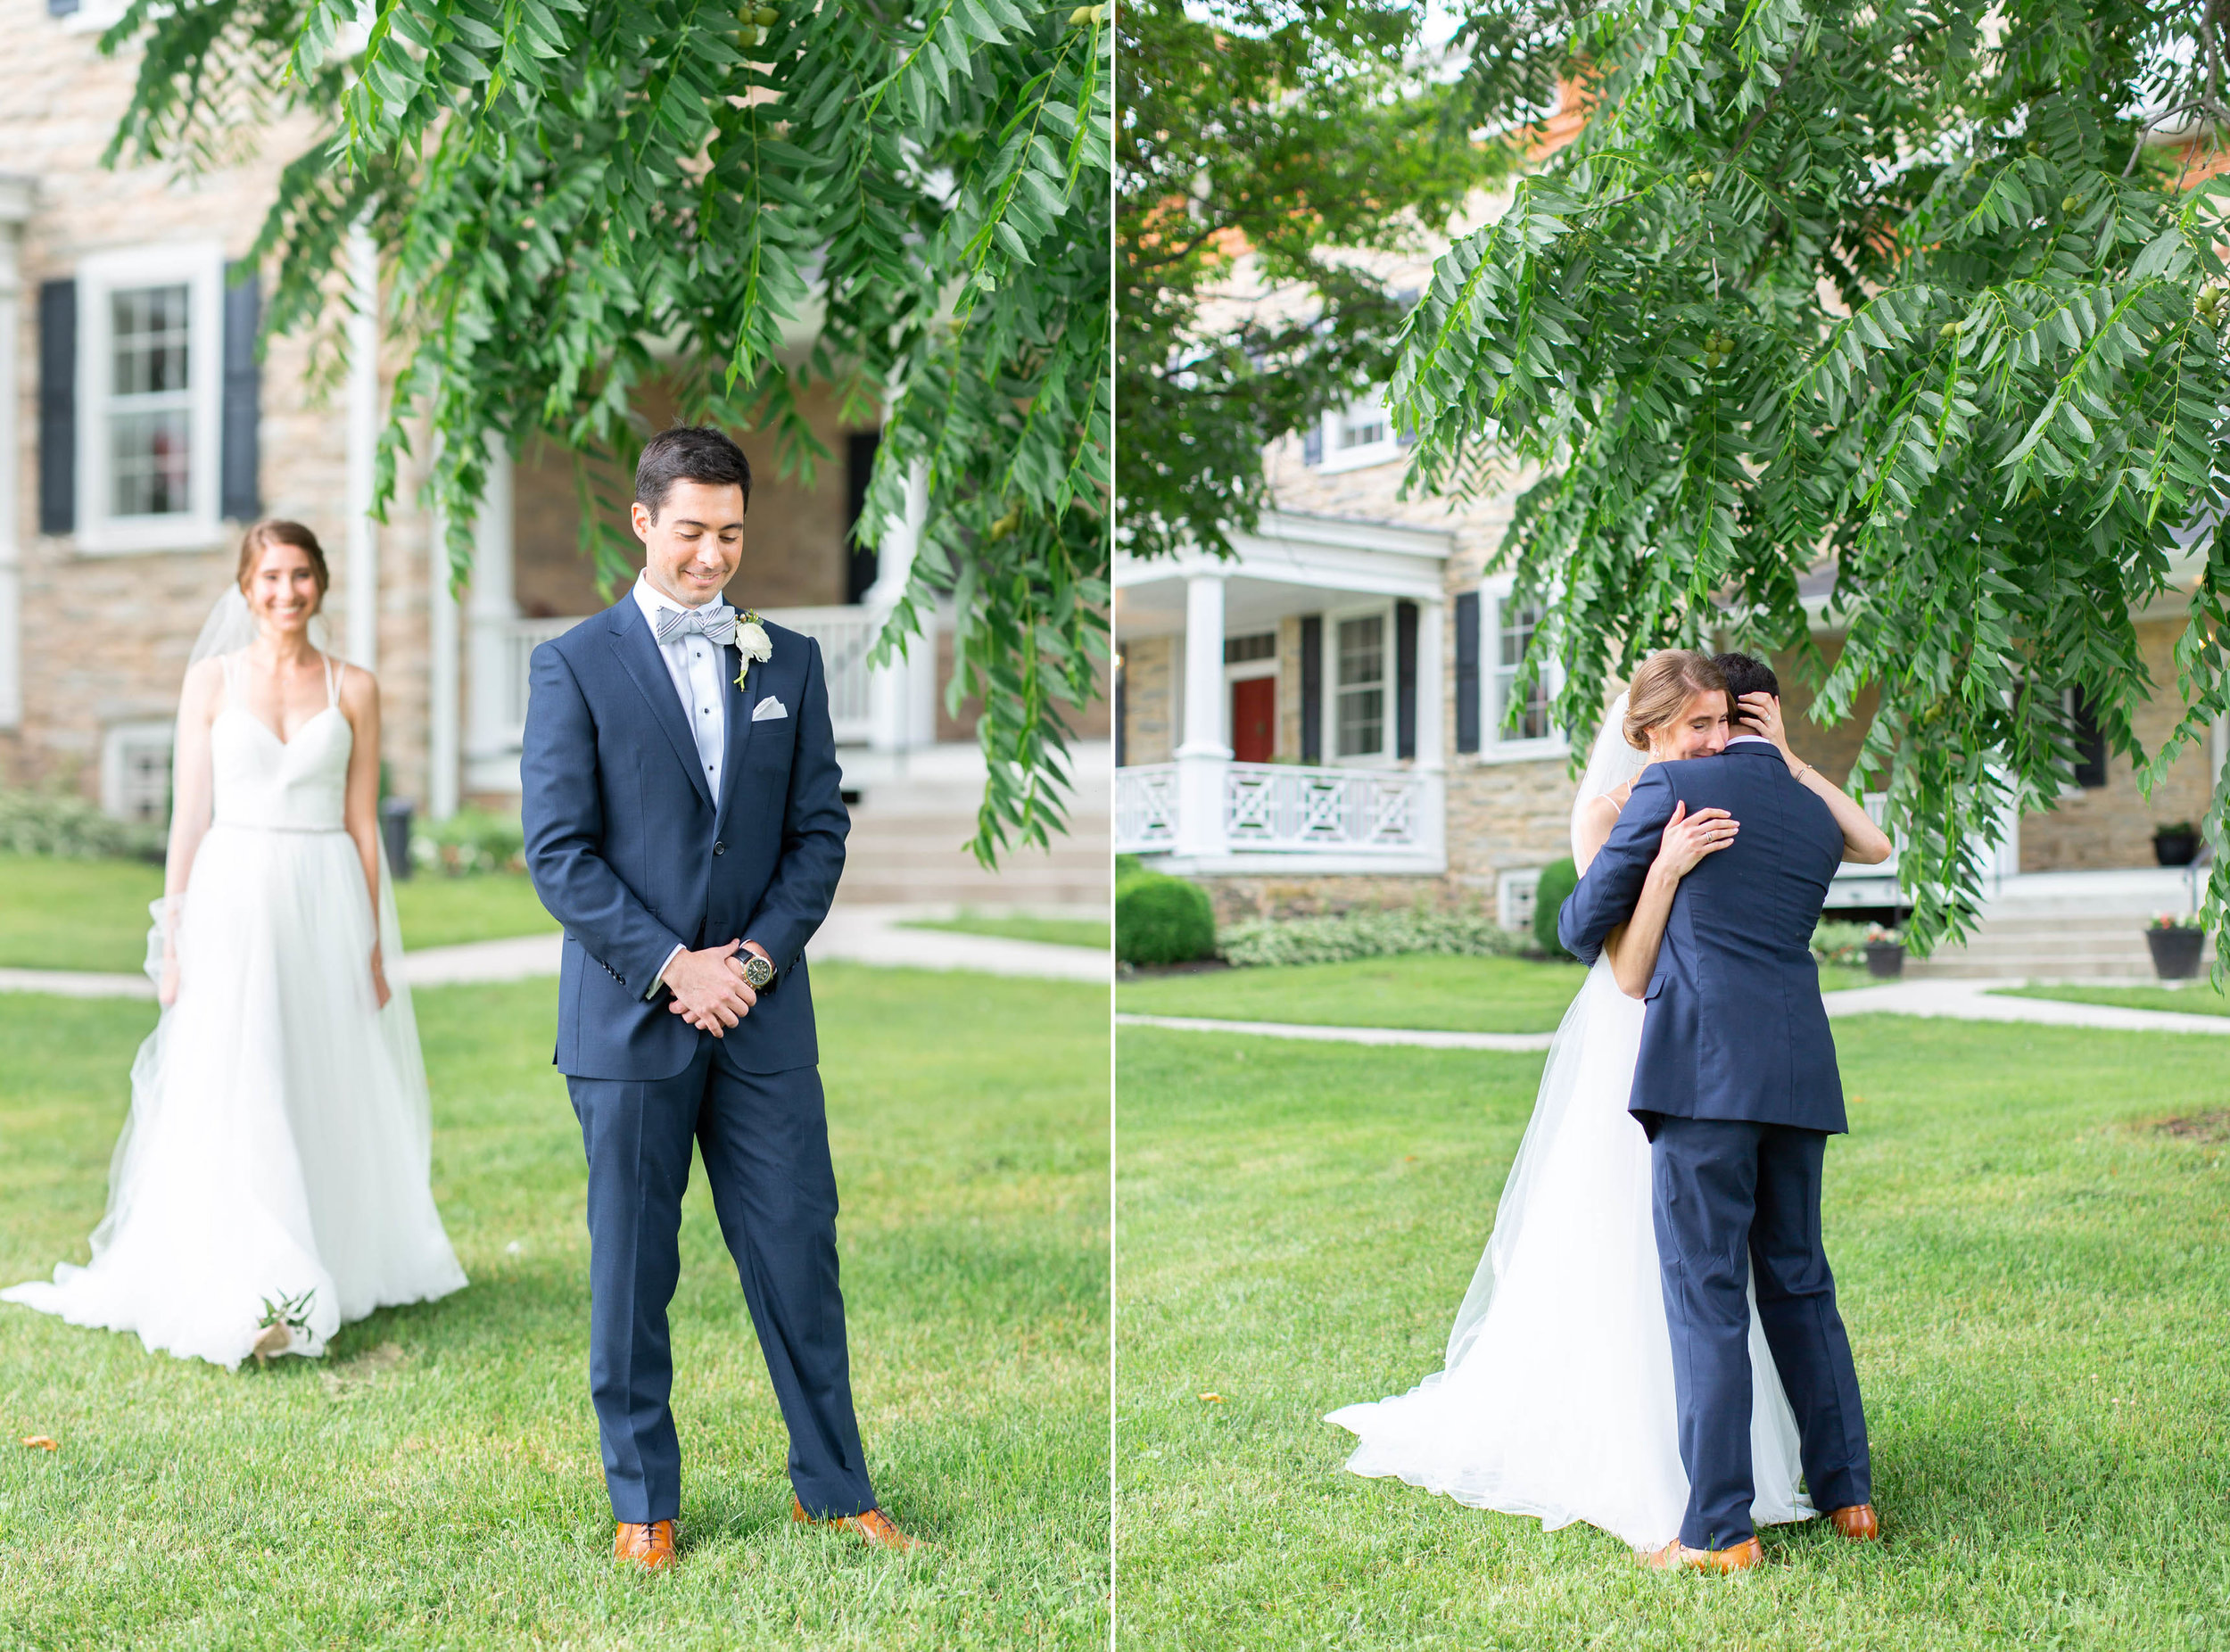 Bride and groom first look front lawn in Maryland vineyard wedding venue